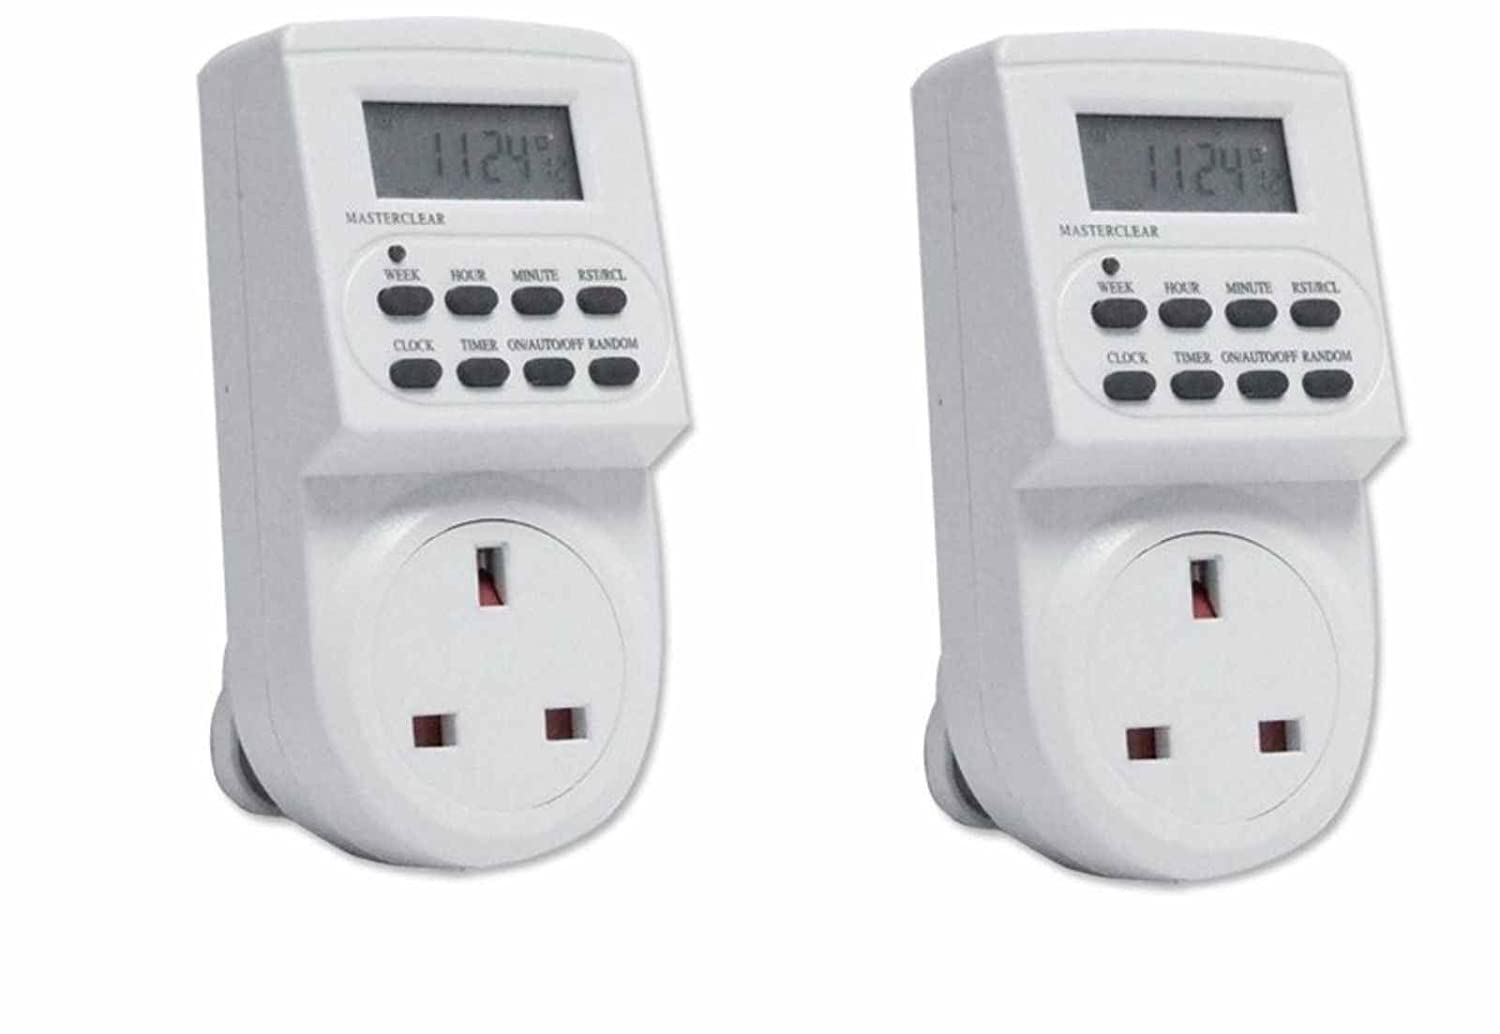 2 x Pifco Plug in 7 Day 24 Hor Digital Programmable 12/24 Socket Timmer Switch